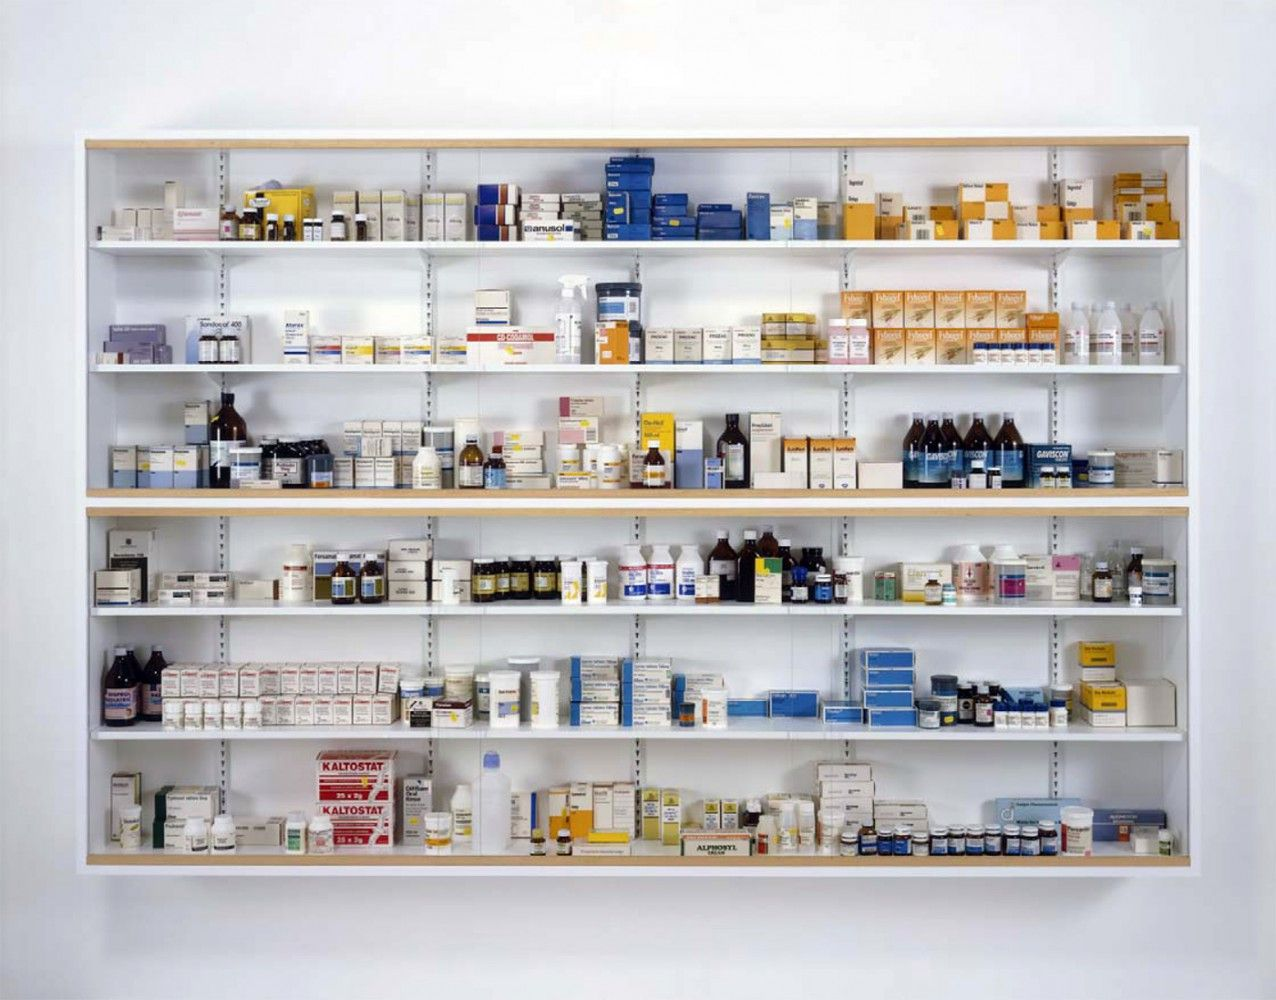 Damien Hirst - Nothing is a Problem for Me http://ow.ly/yieJK